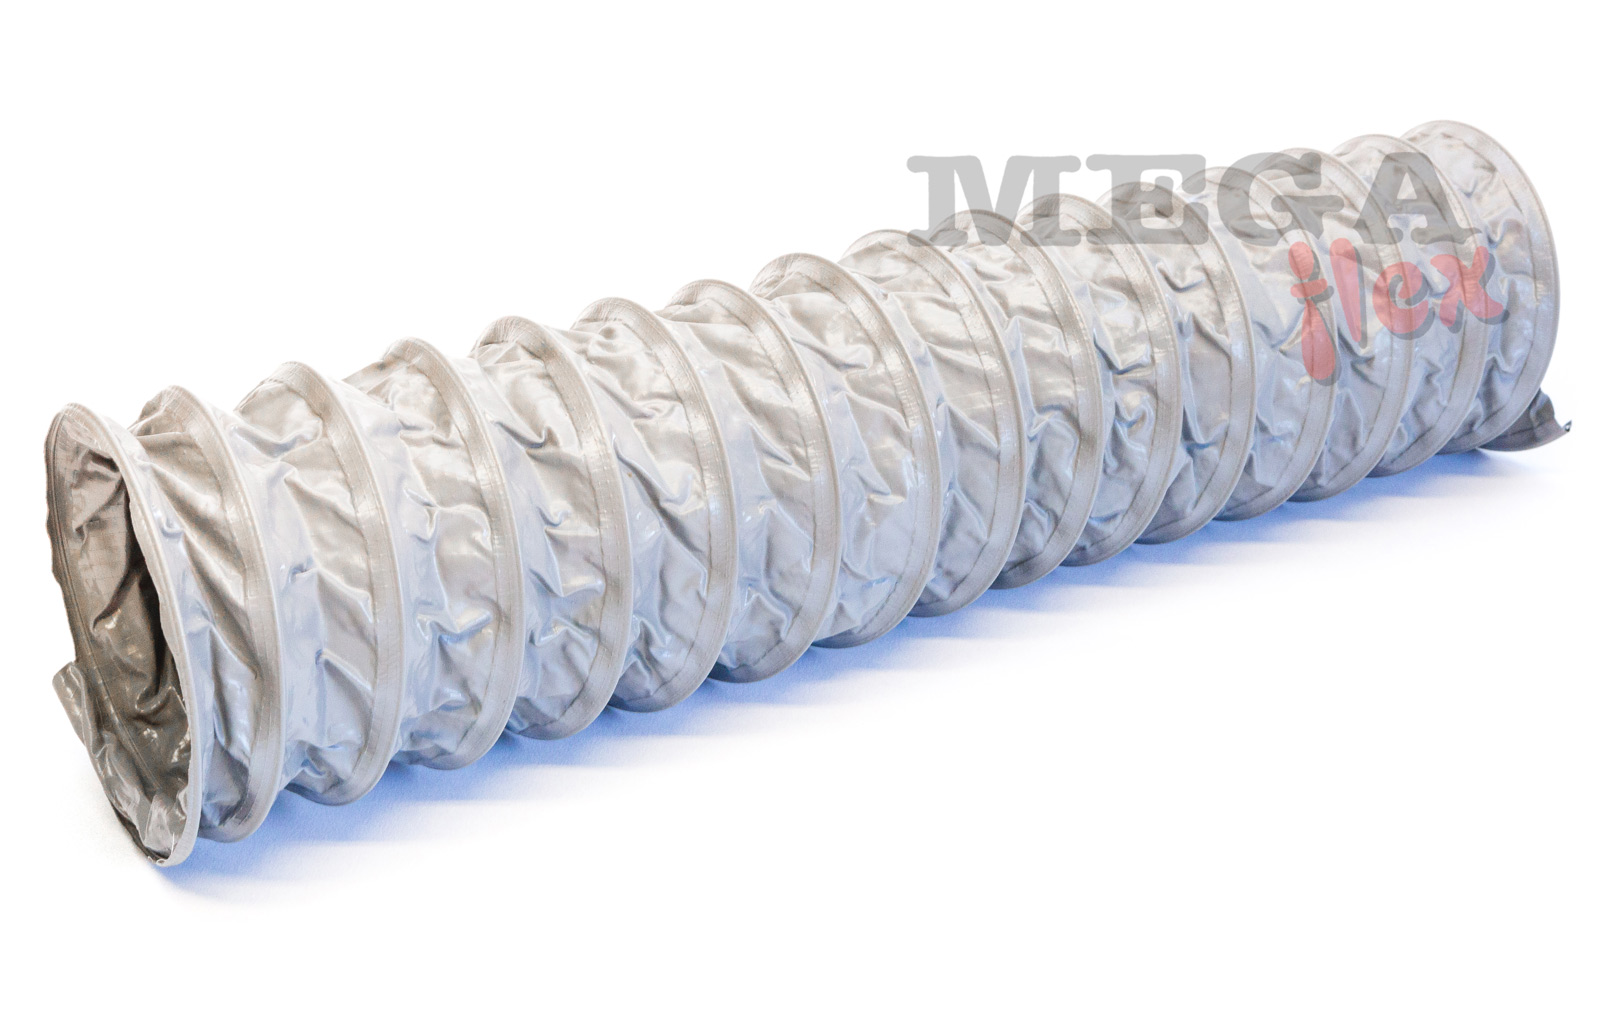 Eolo VENT - Flame Retardant M2 Grey PVC-coated Polyester Fabric Ducting Encapsulating a Steel Wire Helix Reinforcement